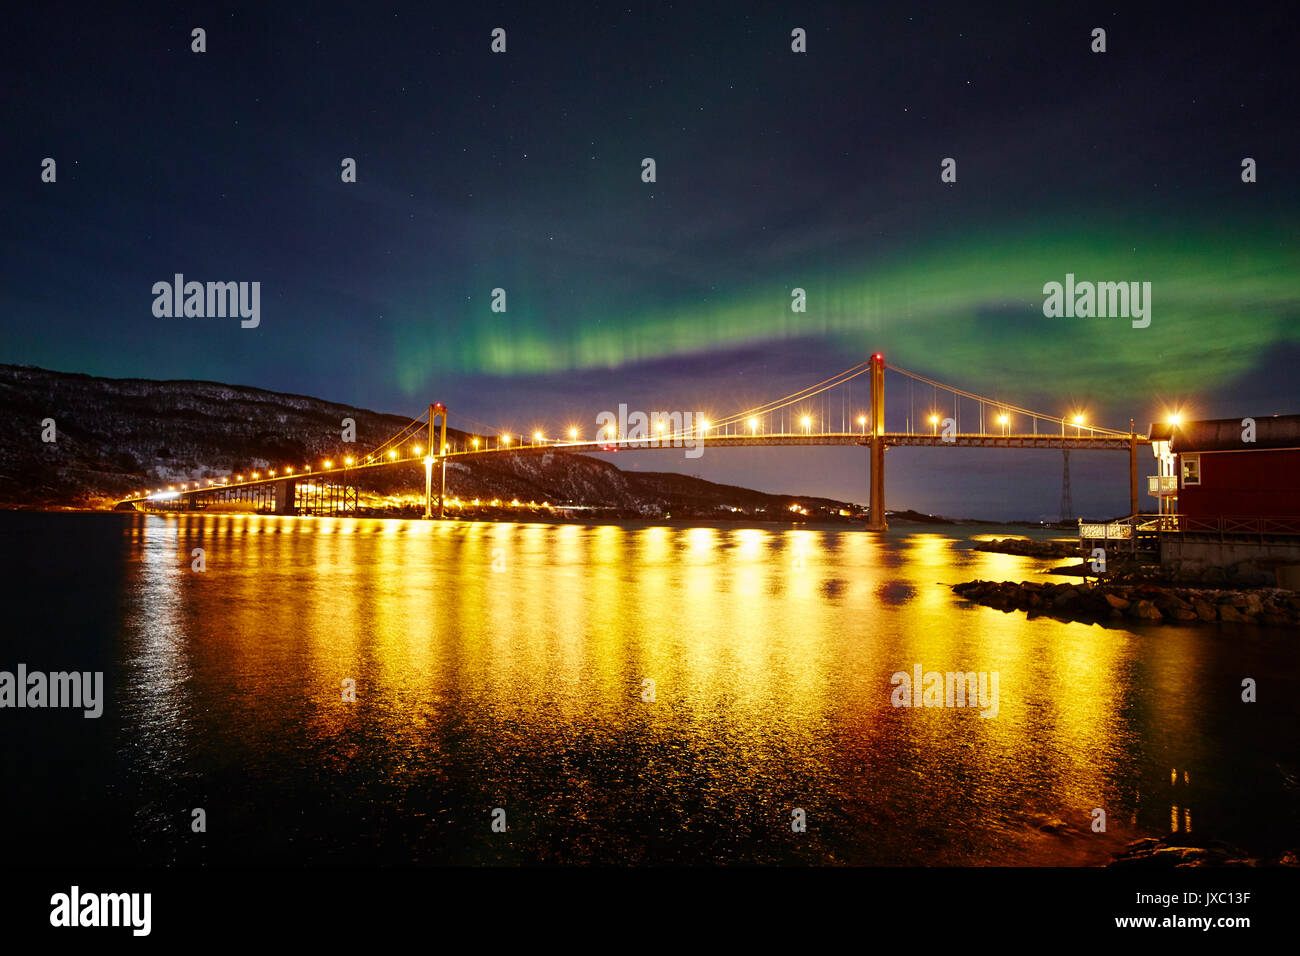 Norther lights above illuminated bridge - Stock Image